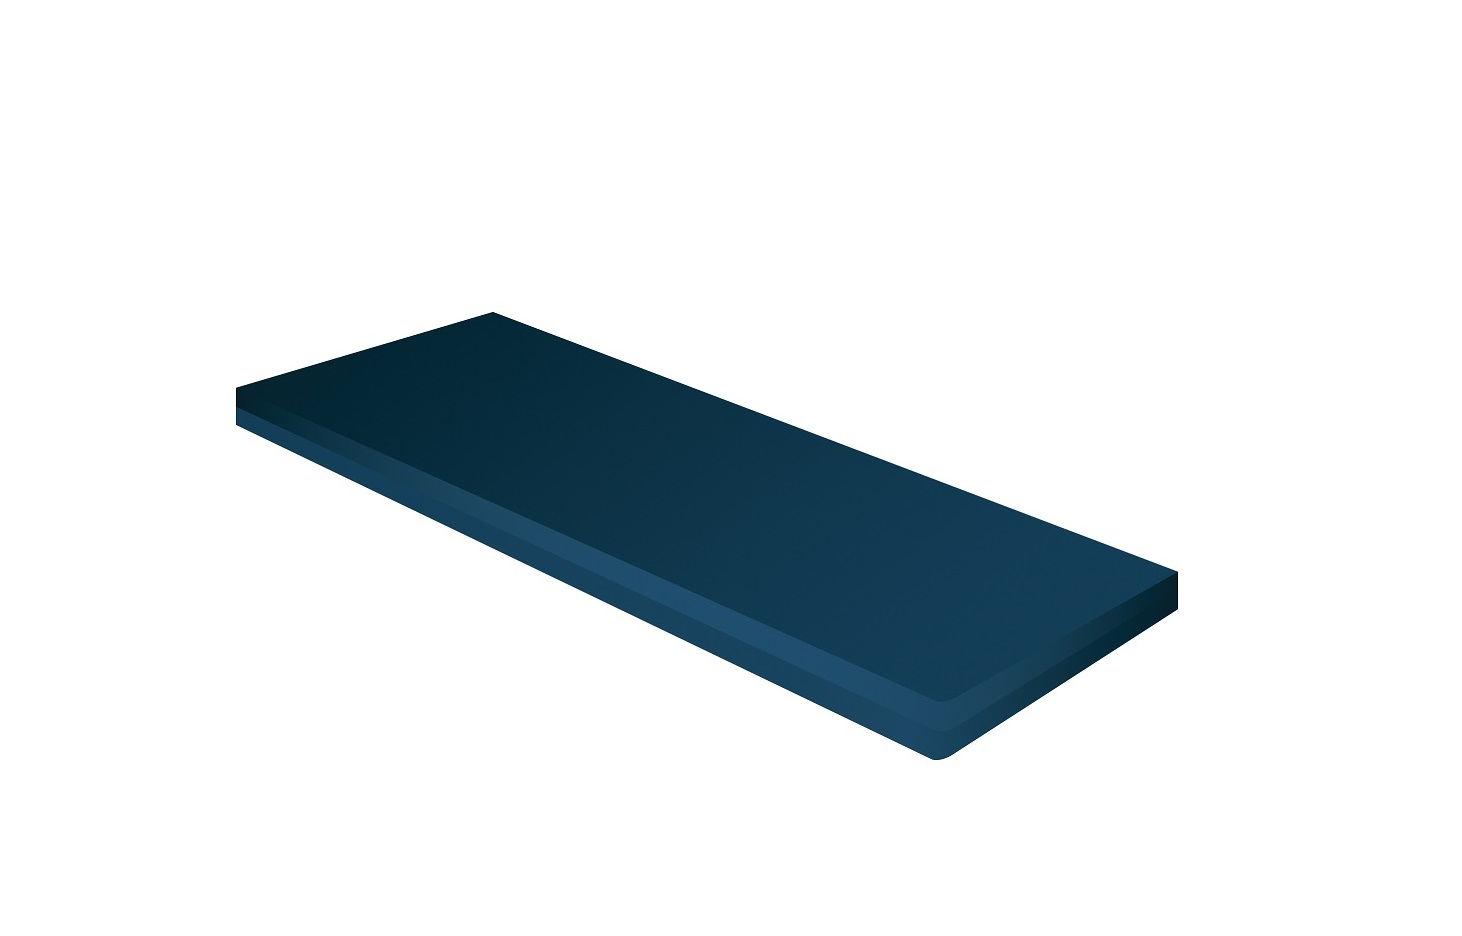 """Roscoe/Probasics standard foam mattress product image. A rectangular mattress covered by a washable navy cover. On a white background. Mattress dimensions 80""""x36""""x6""""."""